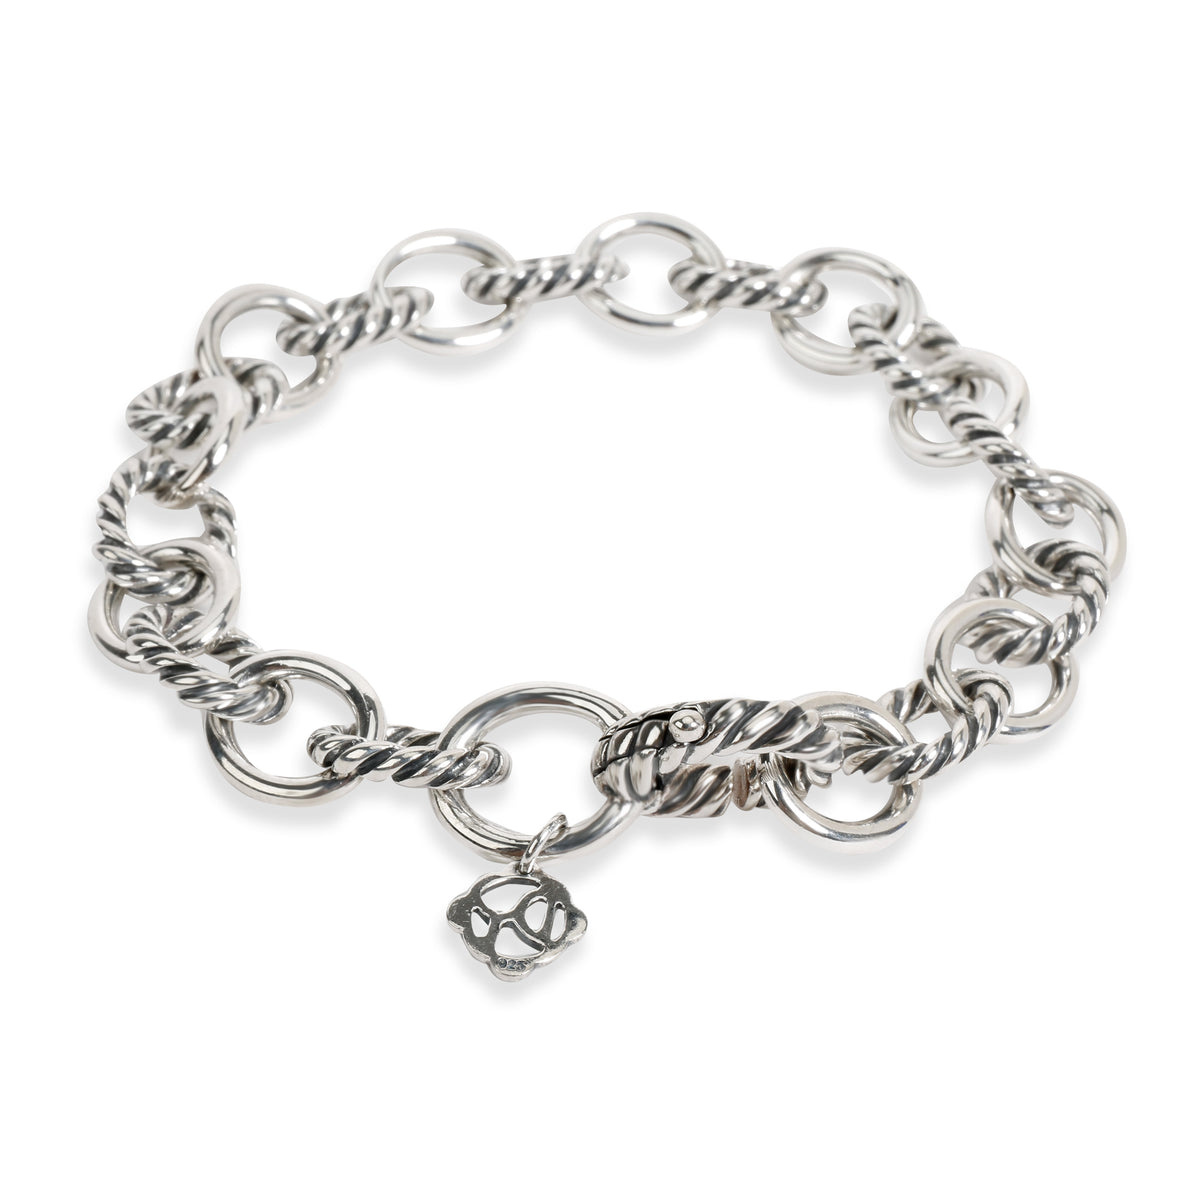 David Yurman Medium Oval Link Bracelet in  Sterling Silver